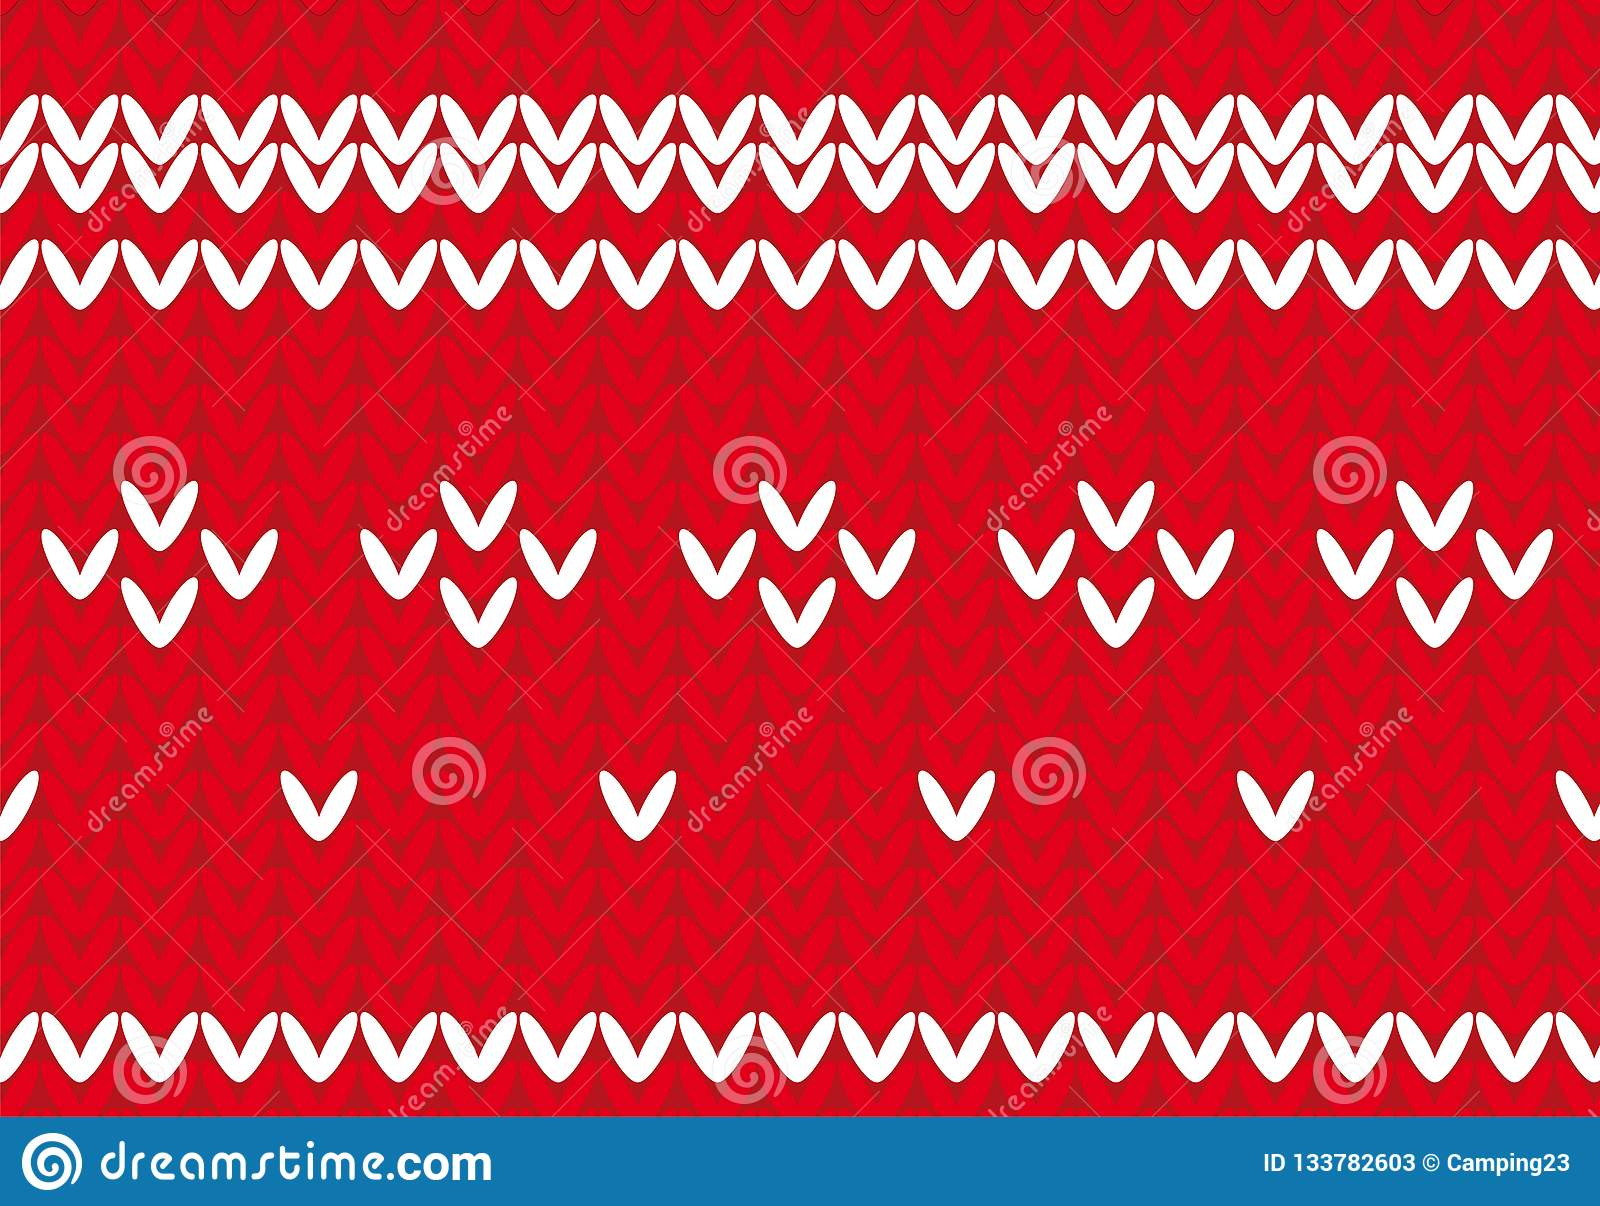 Christmas Sweater Background.Christmas Sweater Background Vector Stock Illustration